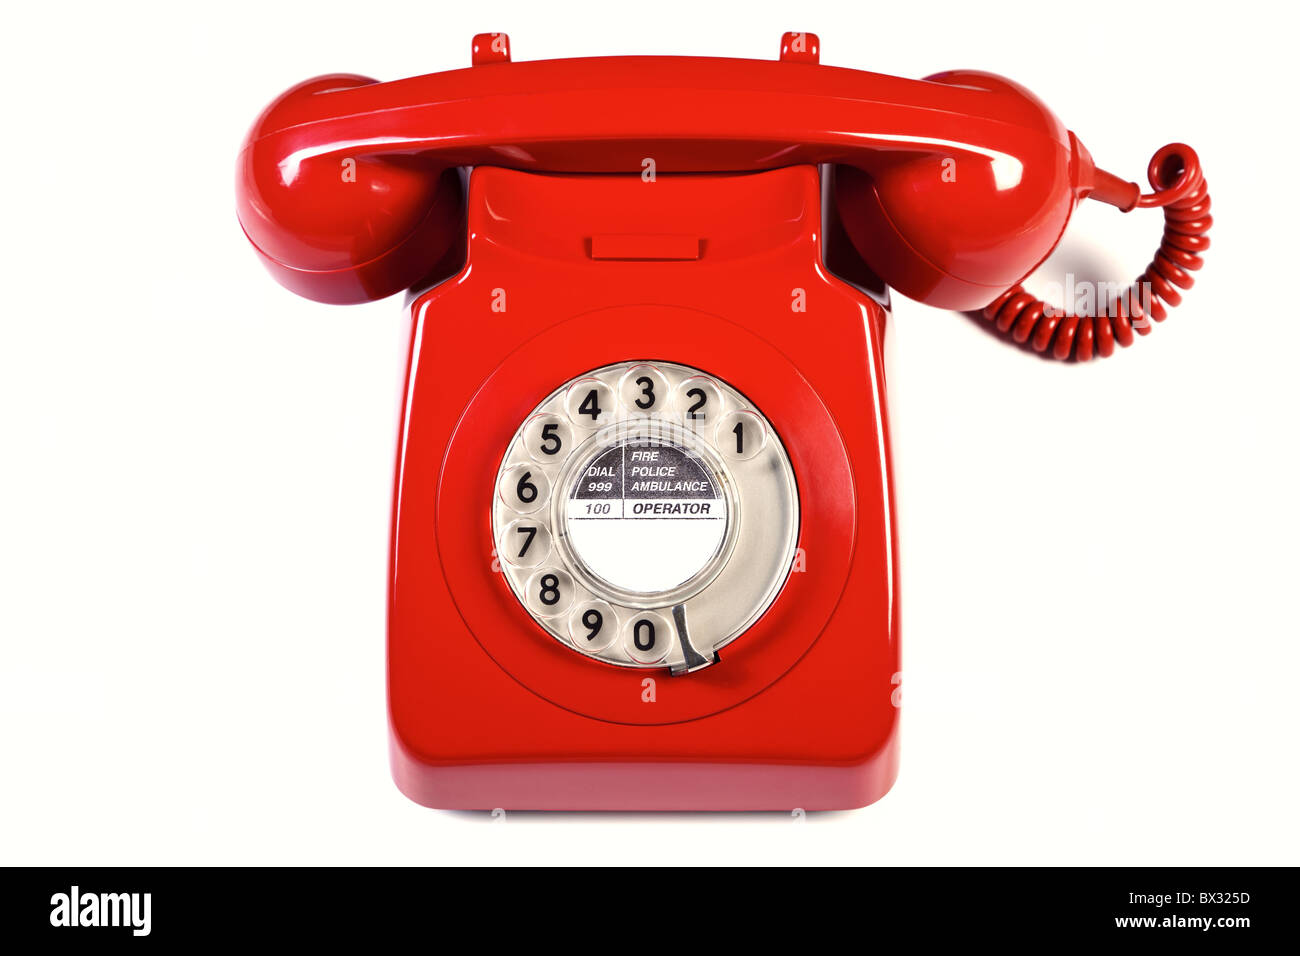 Photo of a retro red telephone isolated on a white background. - Stock Image